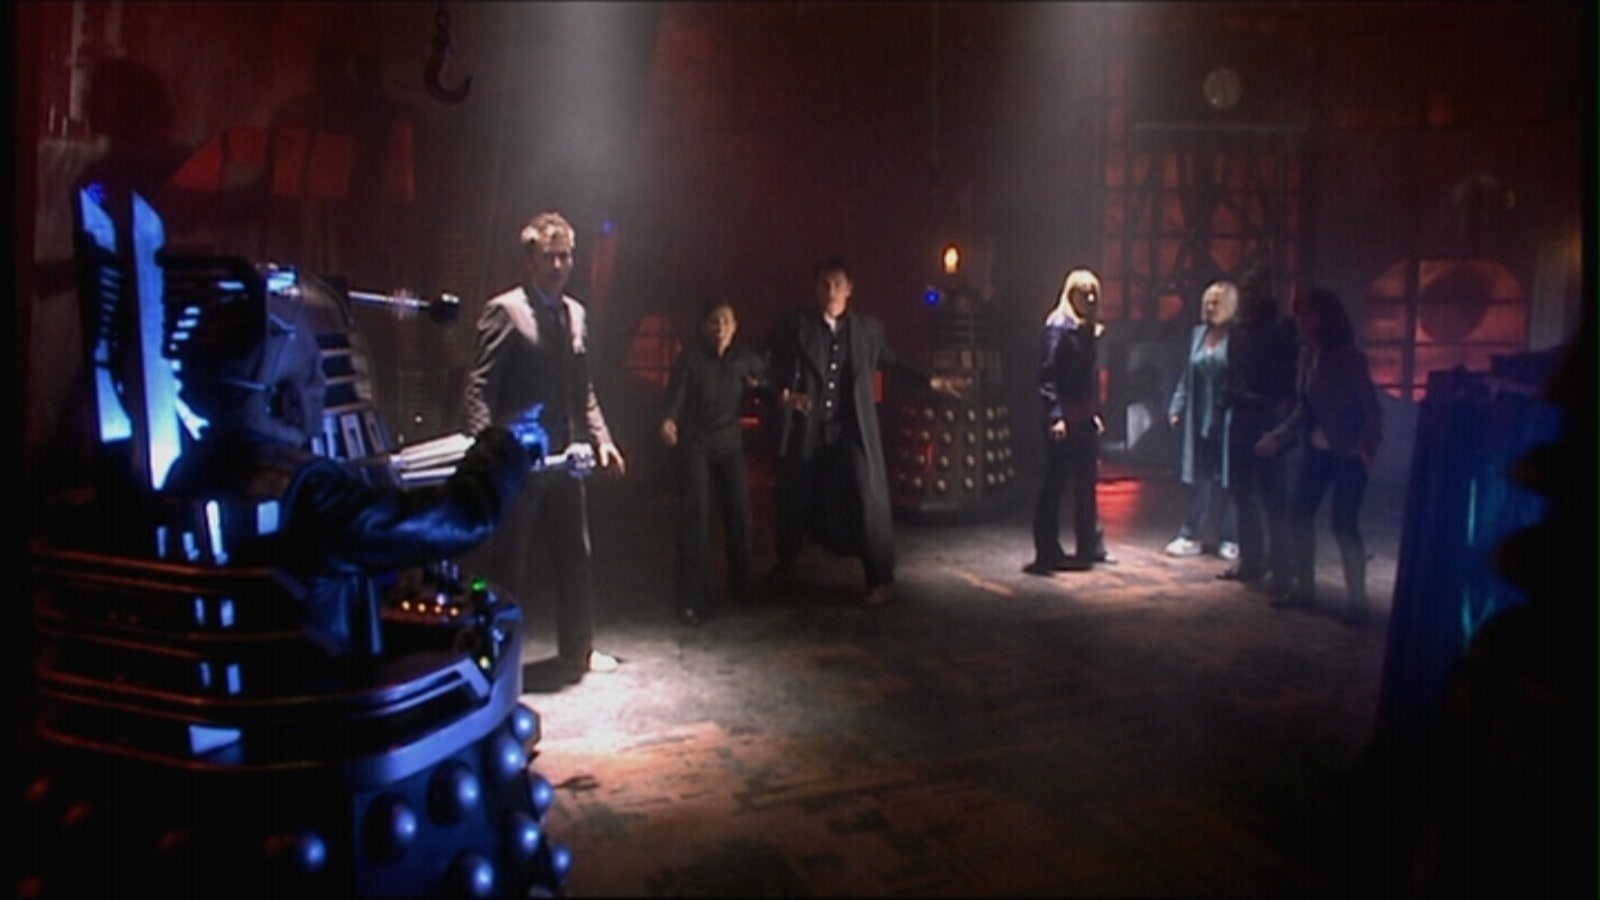 4x13 Journey's End - Doctor Who Image (21328558) - Fanpop